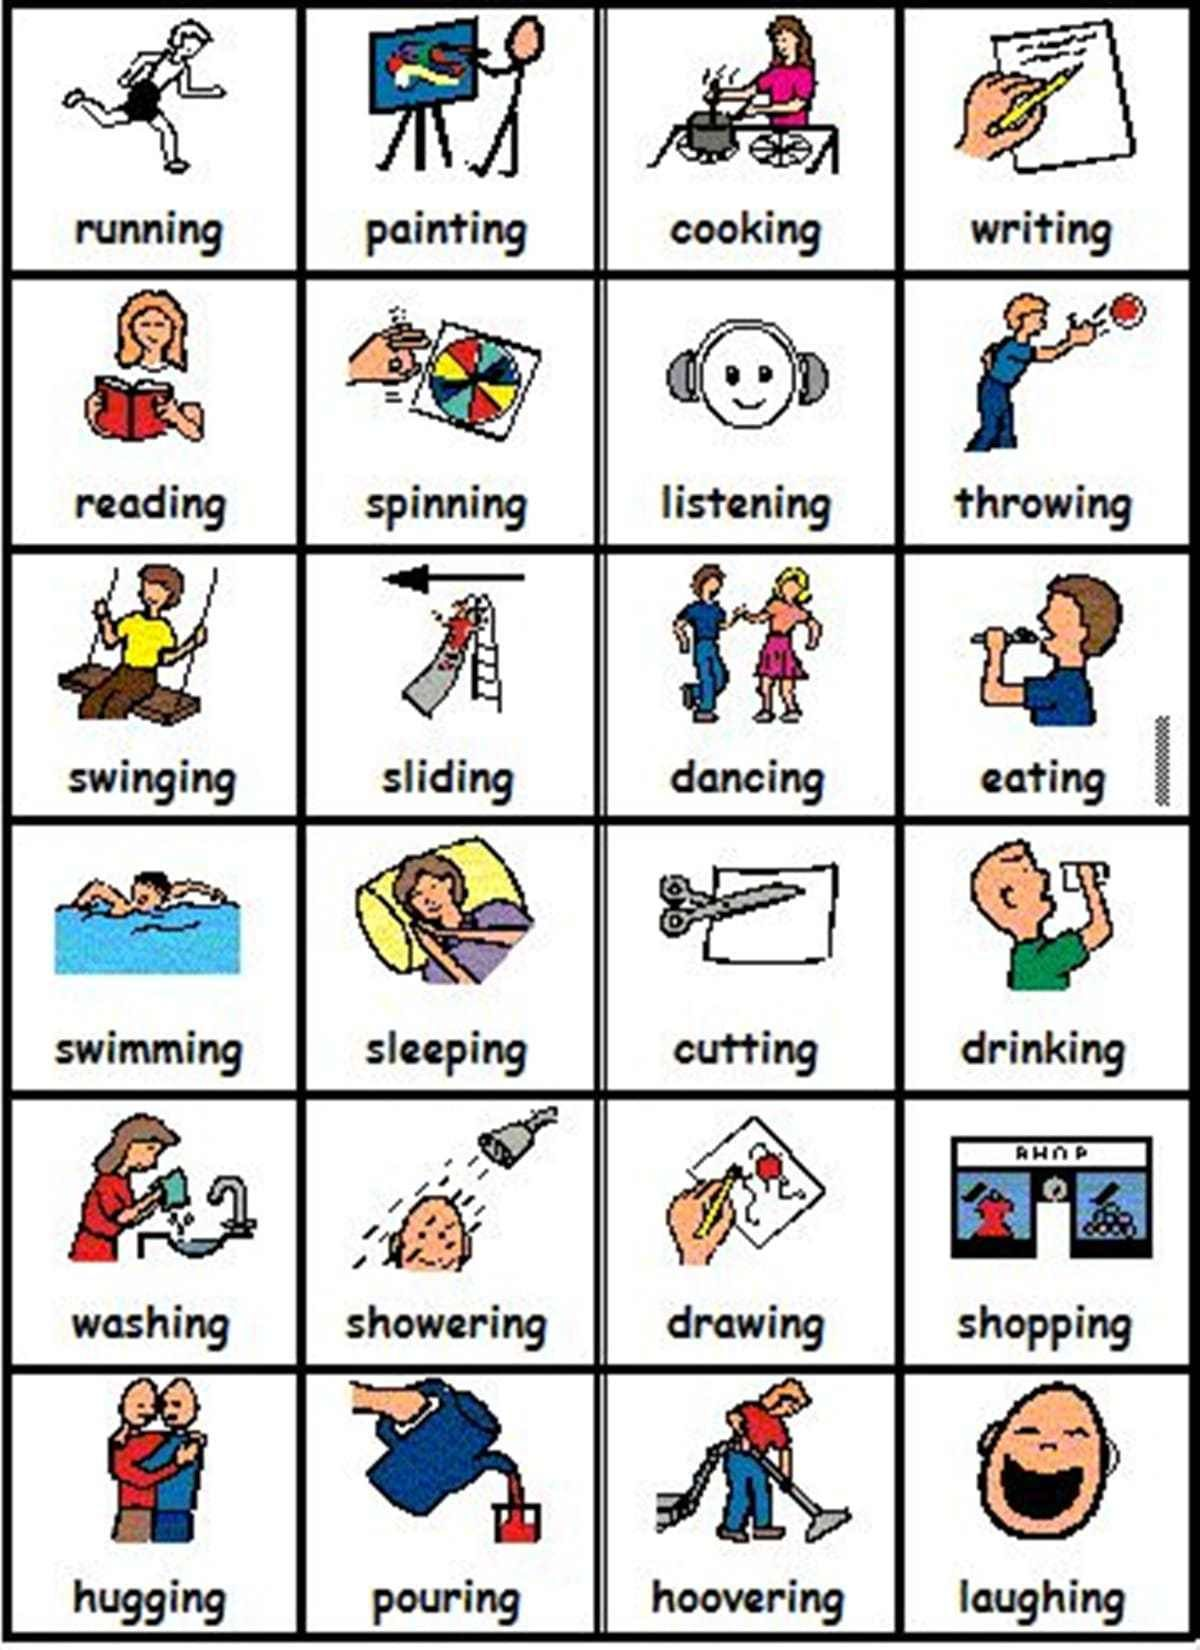 List Of Verbs Learn Common Verbs In English With Esl Pictures Eslbuzz Learning English English Verbs English Language Learn English [ 1650 x 1200 Pixel ]